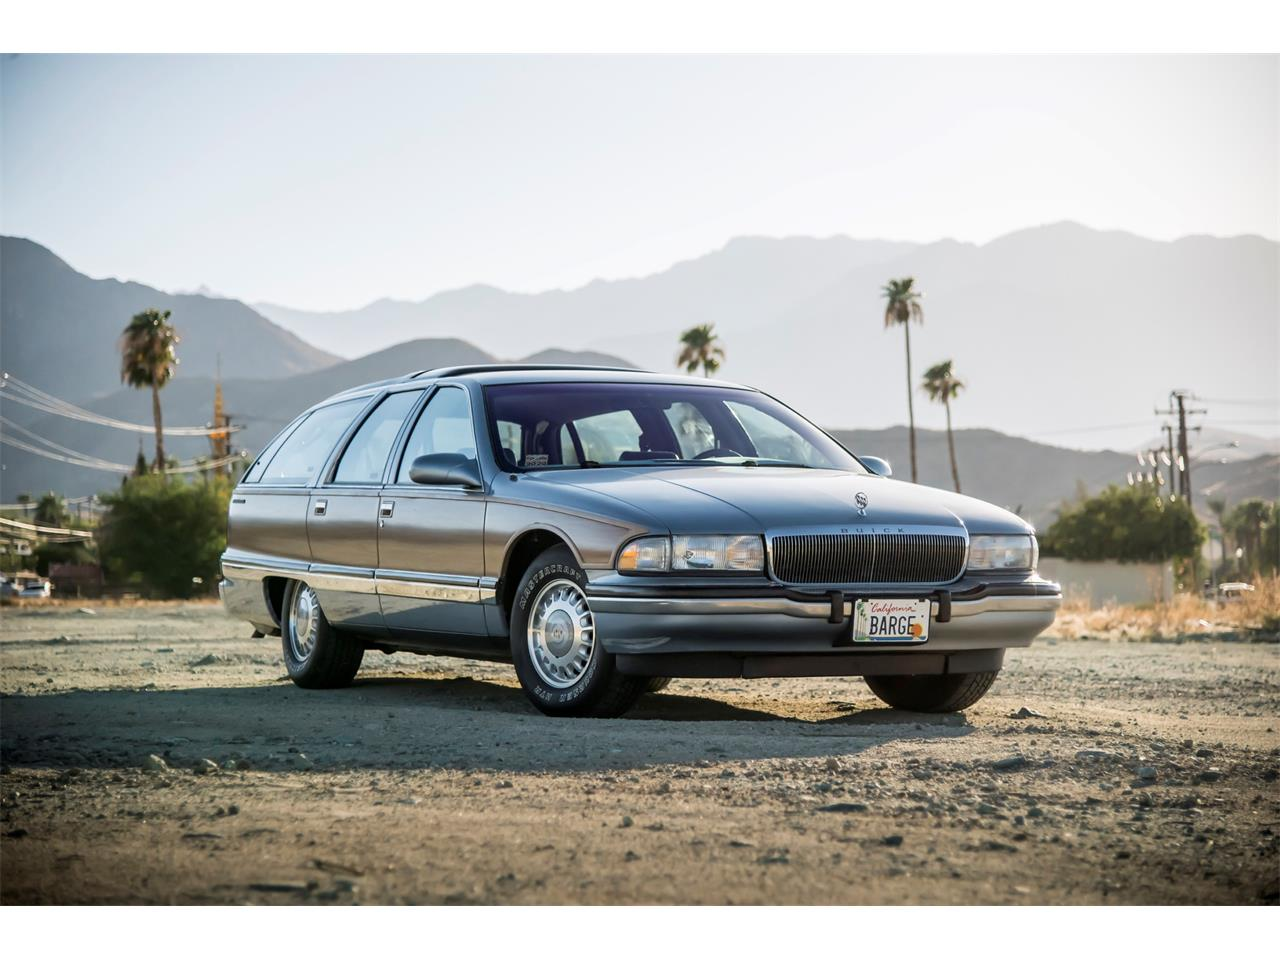 1995 Buick Roadmaster for sale in Cathedral City, CA – photo 3